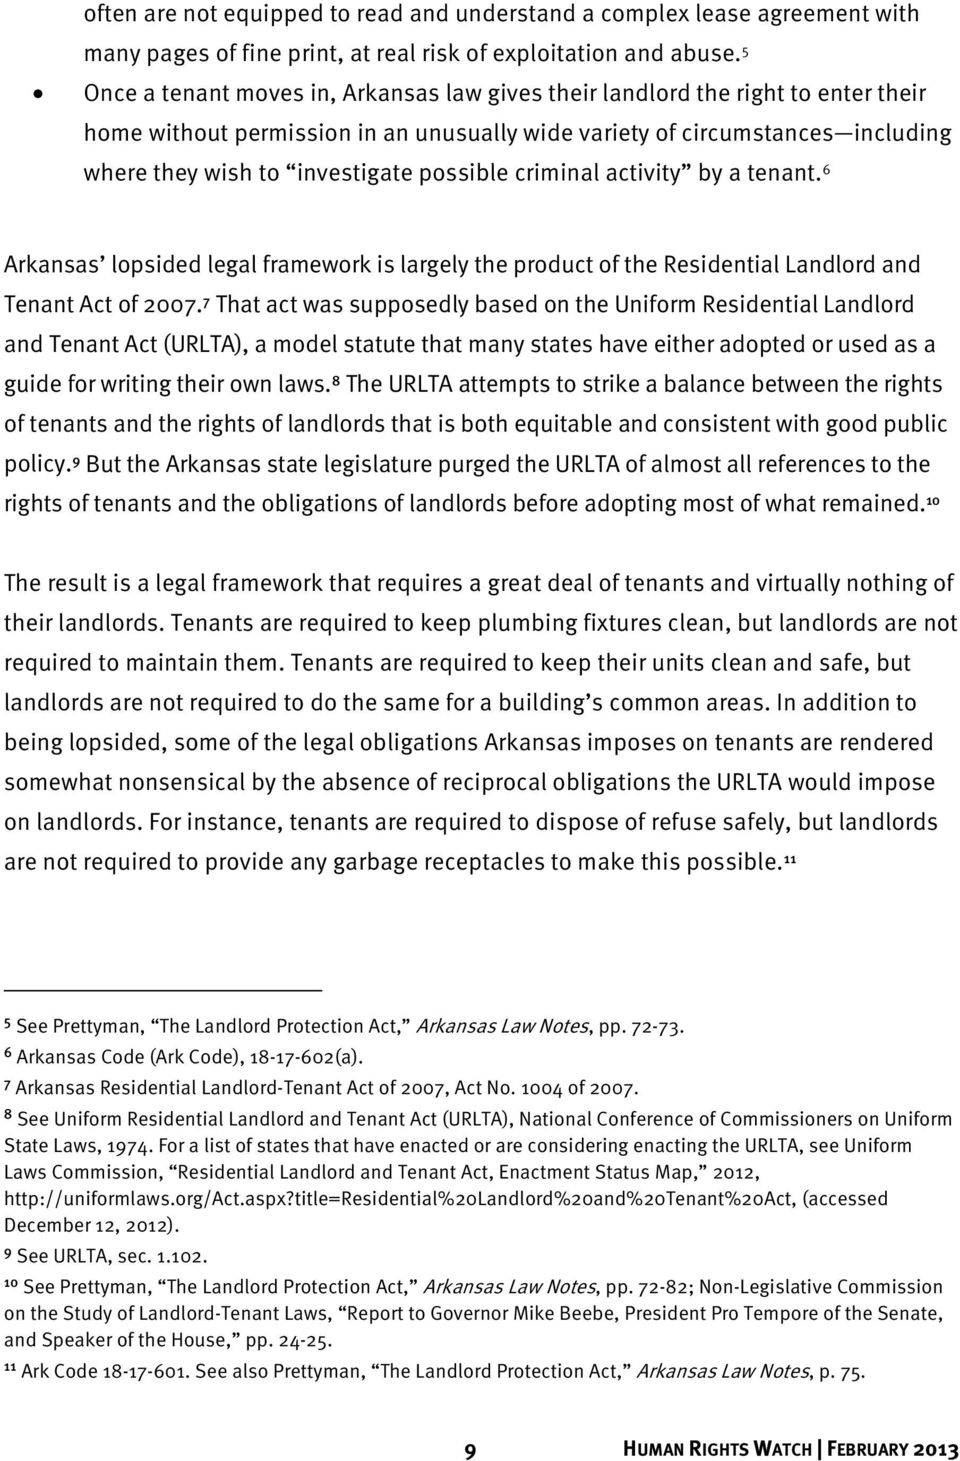 possible criminal activity by a tenant. 6 Arkansas lopsided legal framework is largely the product of the Residential Landlord and Tenant Act of 2007.